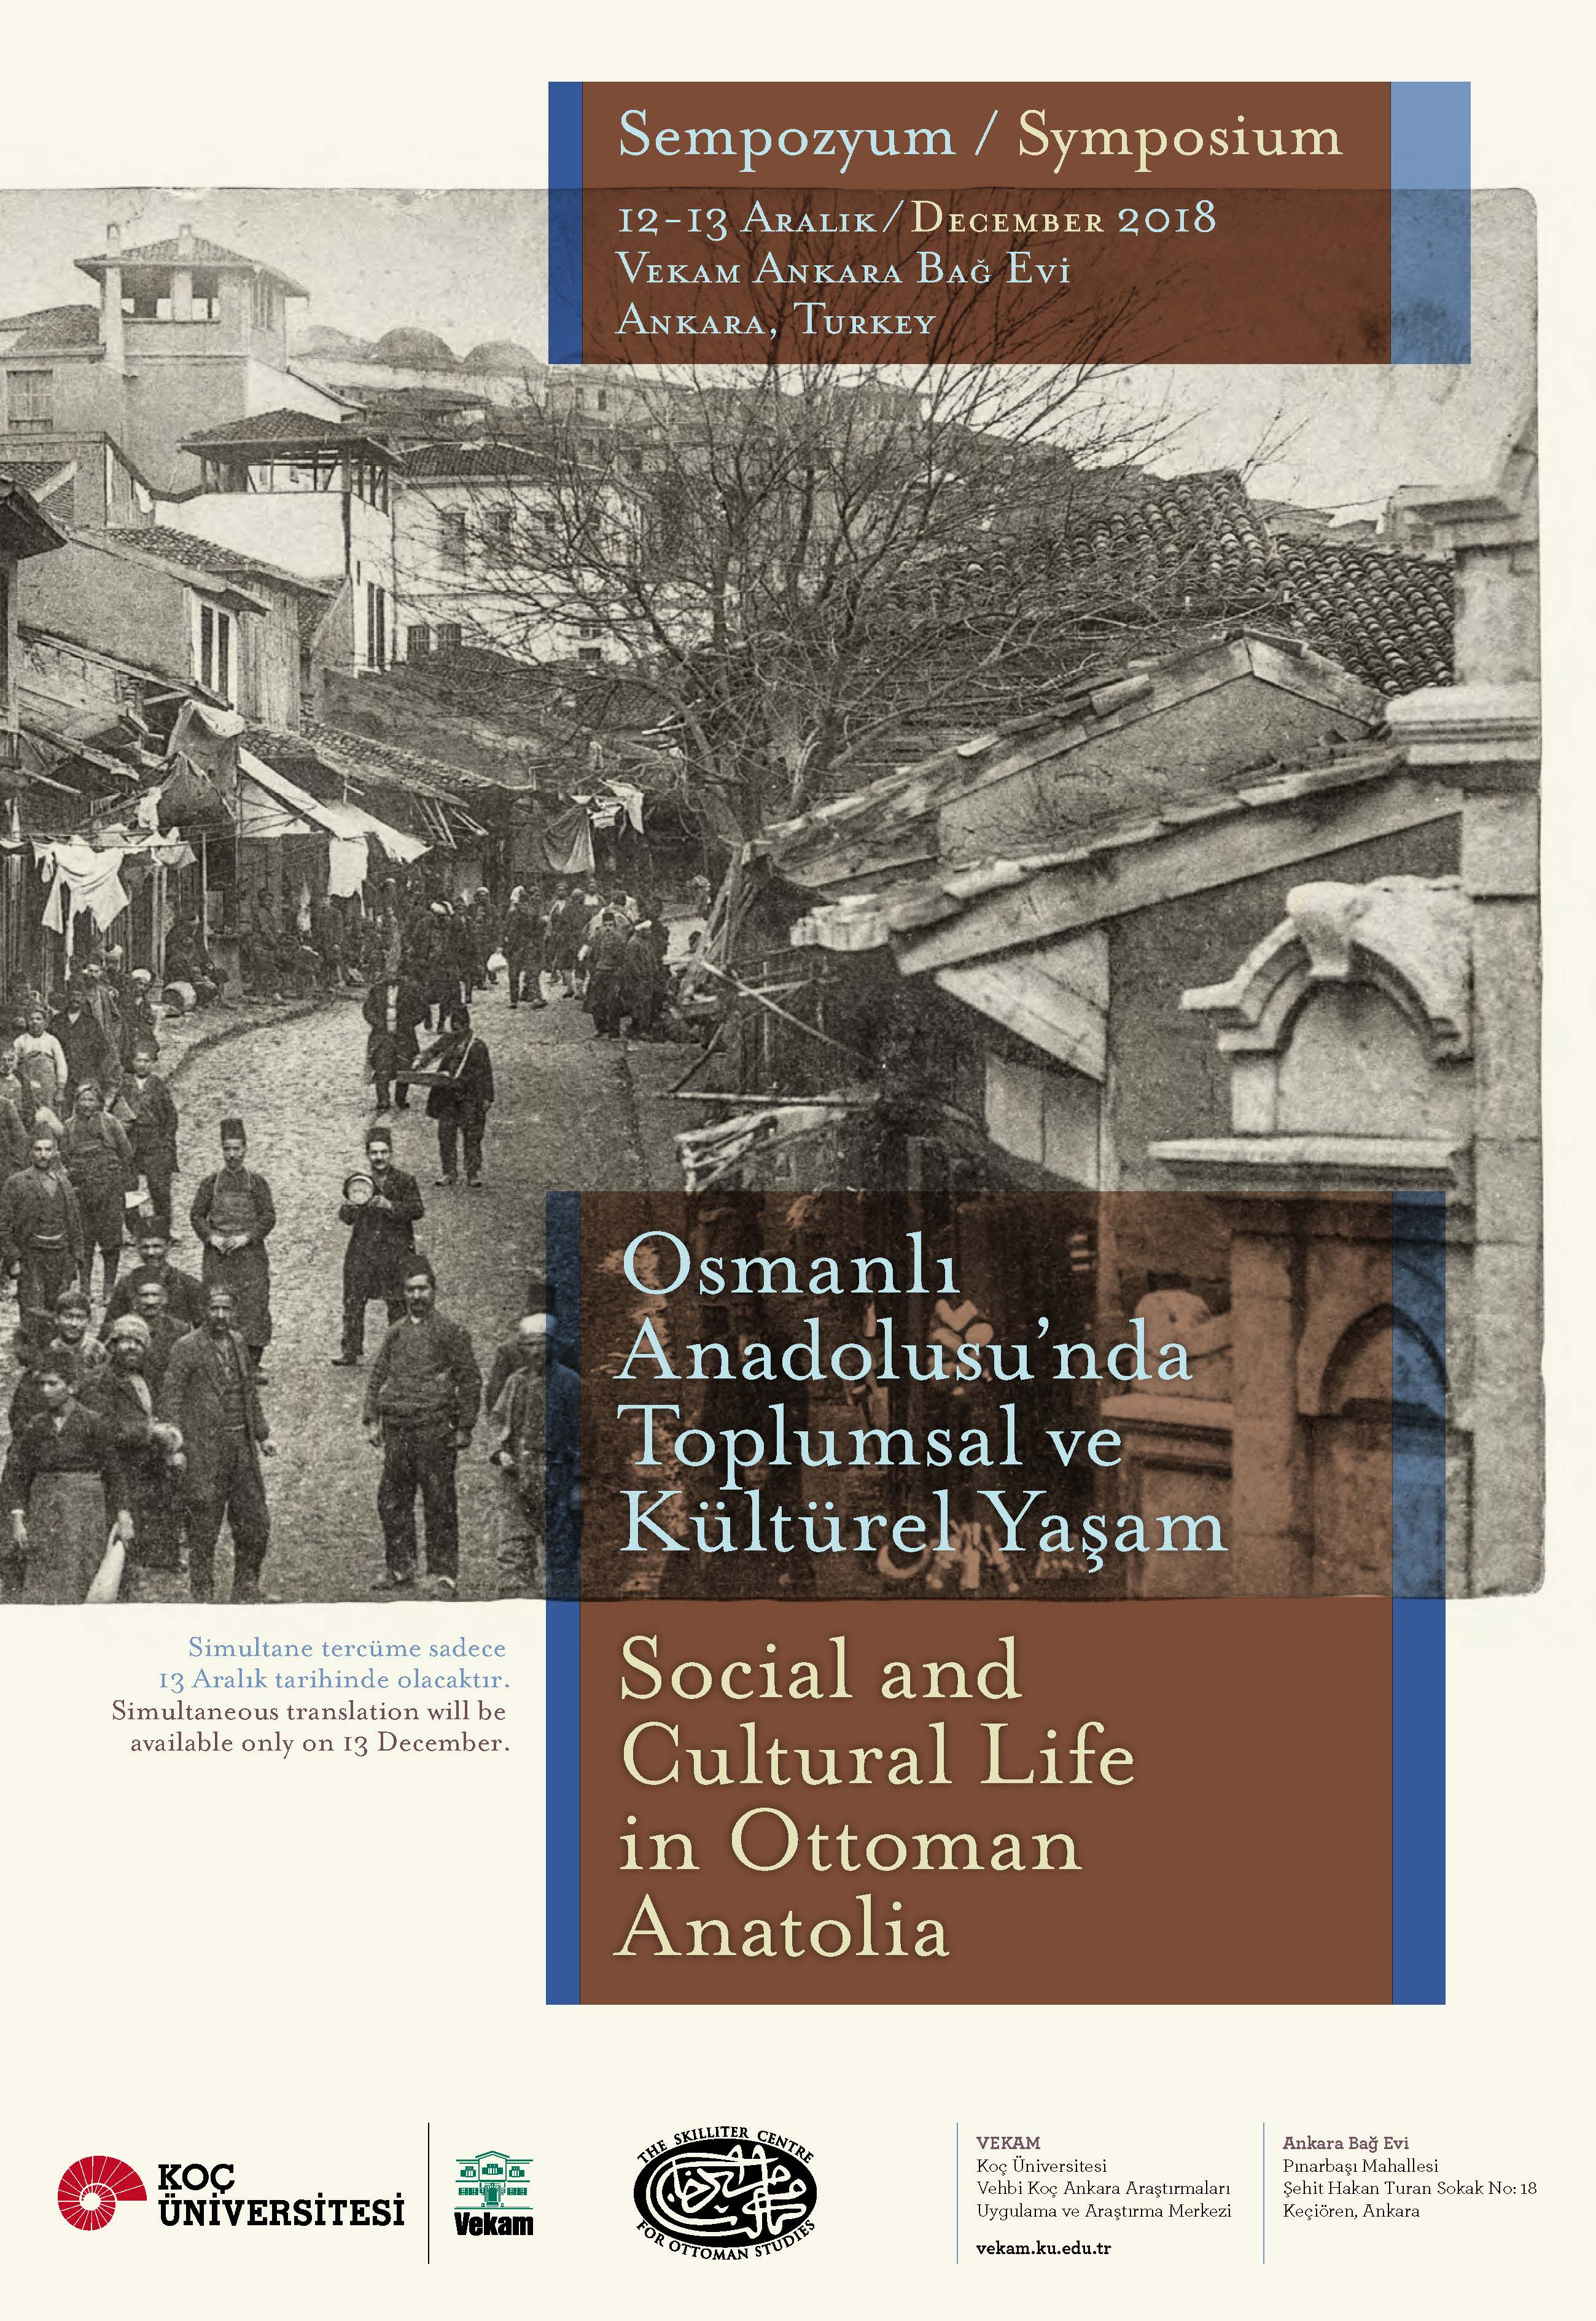 Social and Cultural Life in Ottoman Anatolia